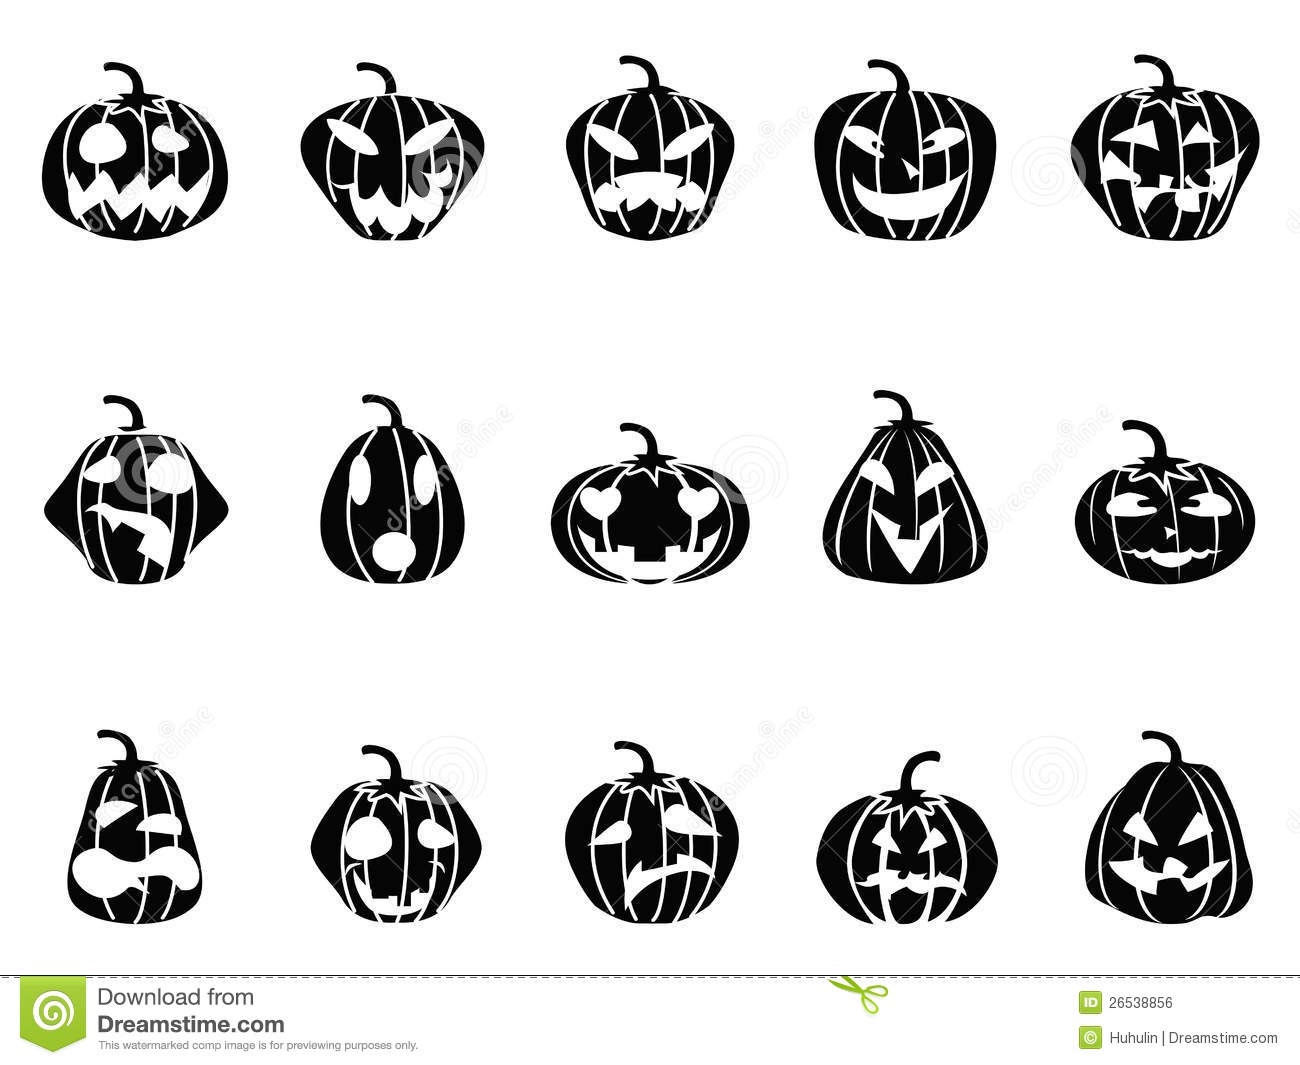 Spider 177860 moreover Royalty Free Stock Image Halloween Pumpkin Icons Set Image26538856 as well Halloweencoloringpages3 also Potion Black And White 6y2VNqBk 7C 7CG4xYgZNBv61TneM EhqBHUg44TQ7ljkIo besides Fangs 177430. on scary cauldron clip art